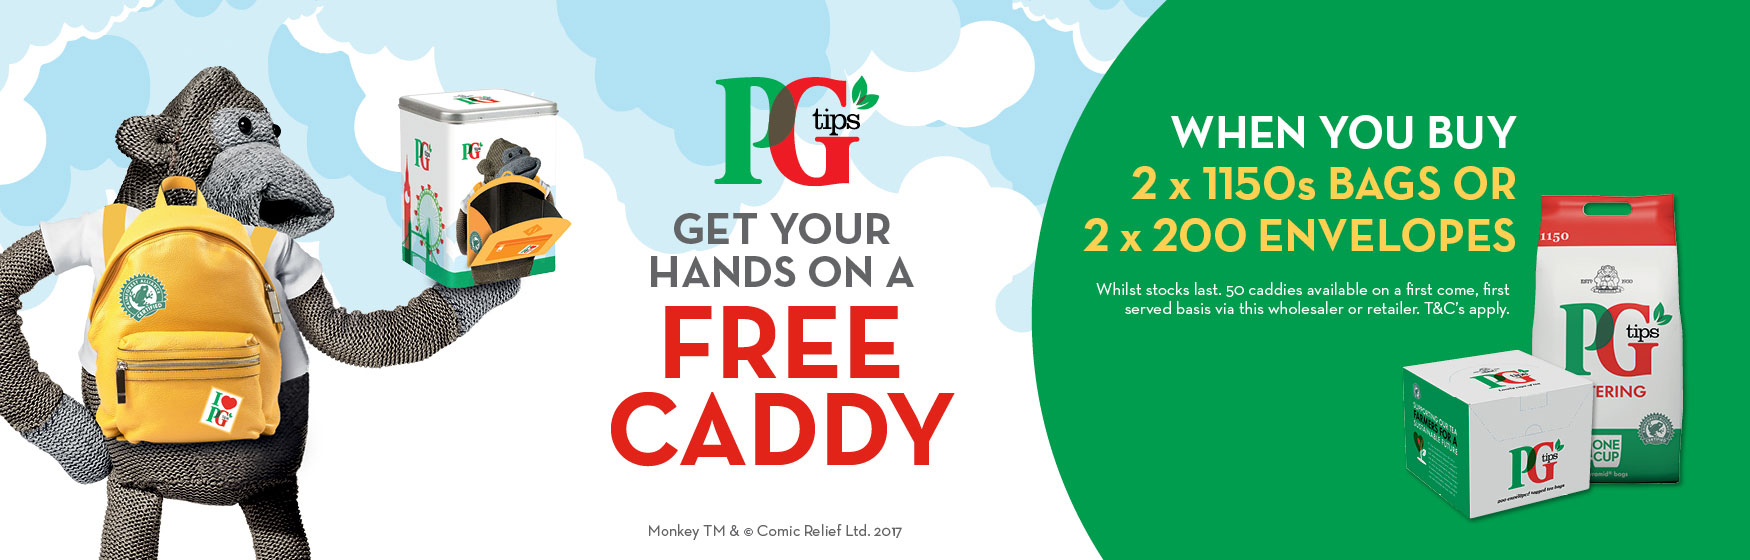 PG Tips - Free caddy